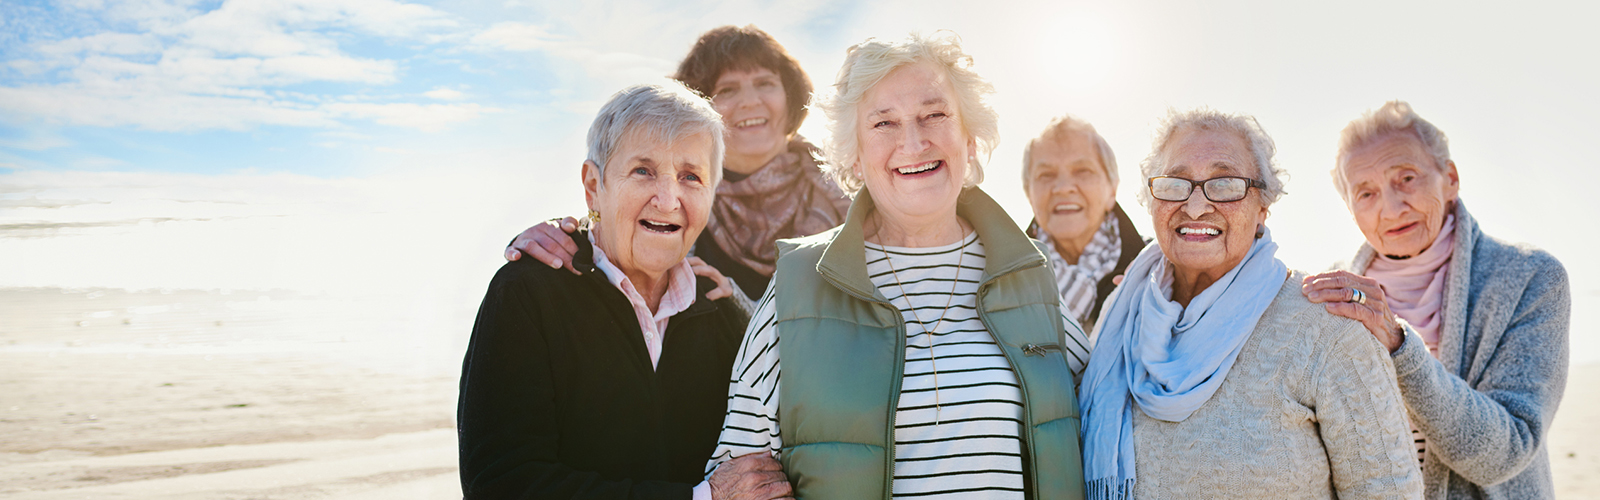 Group of six smiling older women on a beach with a bright sky